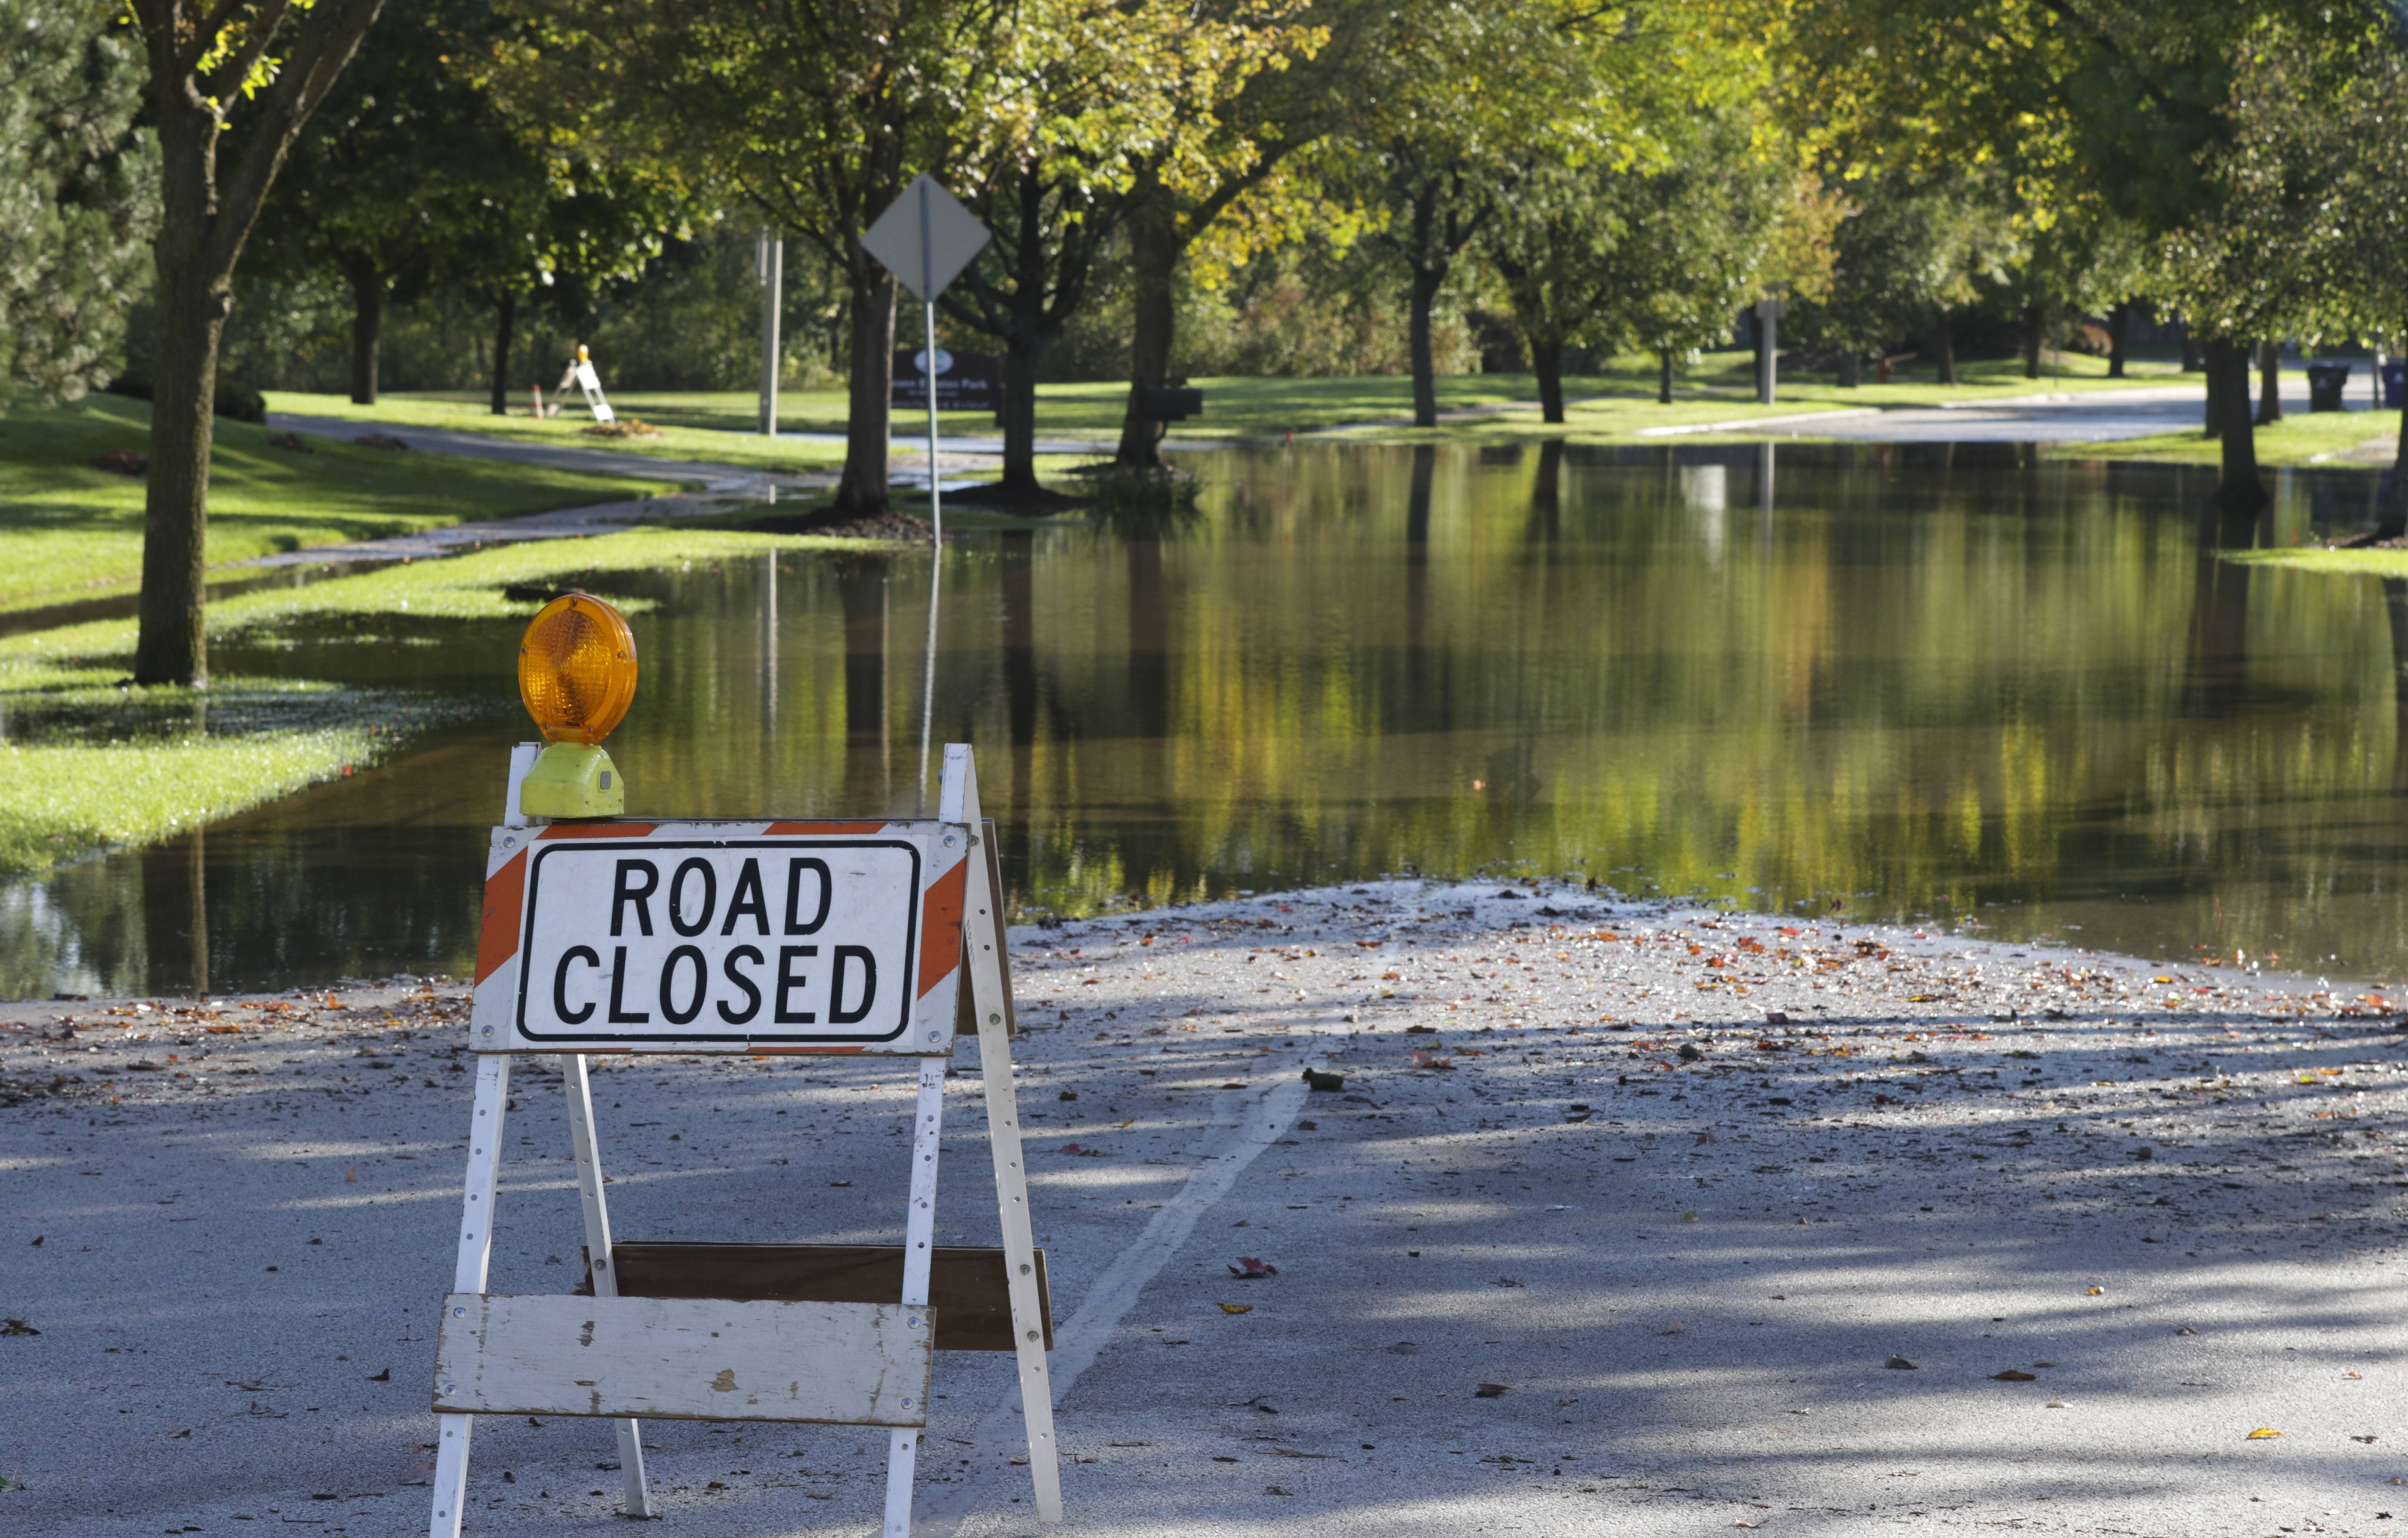 Part of Dunrobin Road in Naperville remained closed Monday morning because of high water after weekend storms dumped roughly 8 inches of rain on the area.